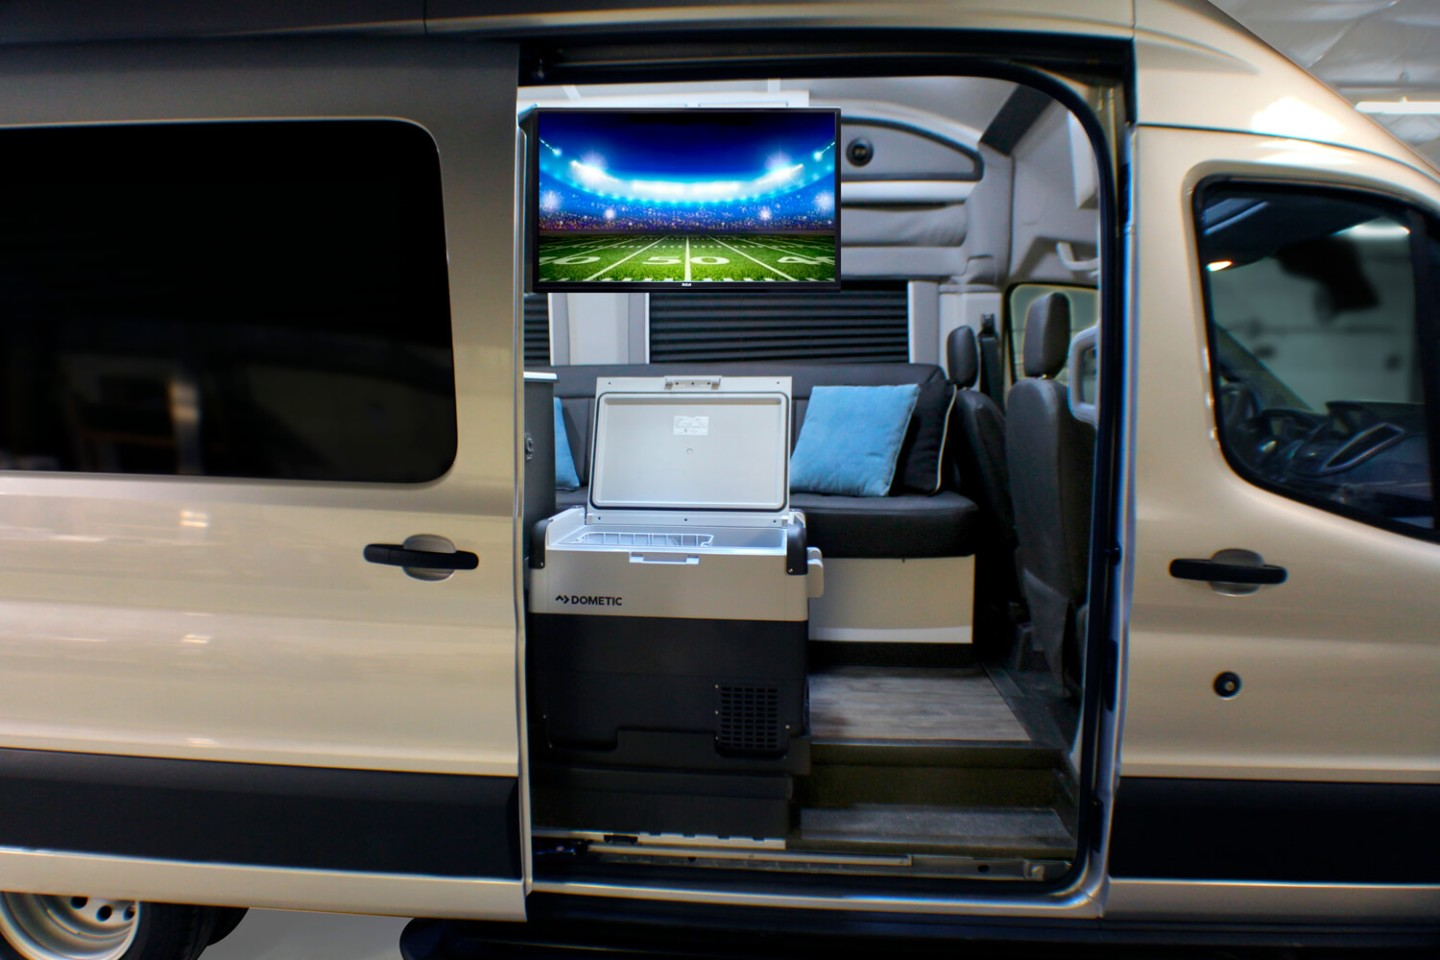 Swing the fridge and TV around, and you have a game day tailgate area or movie night nook